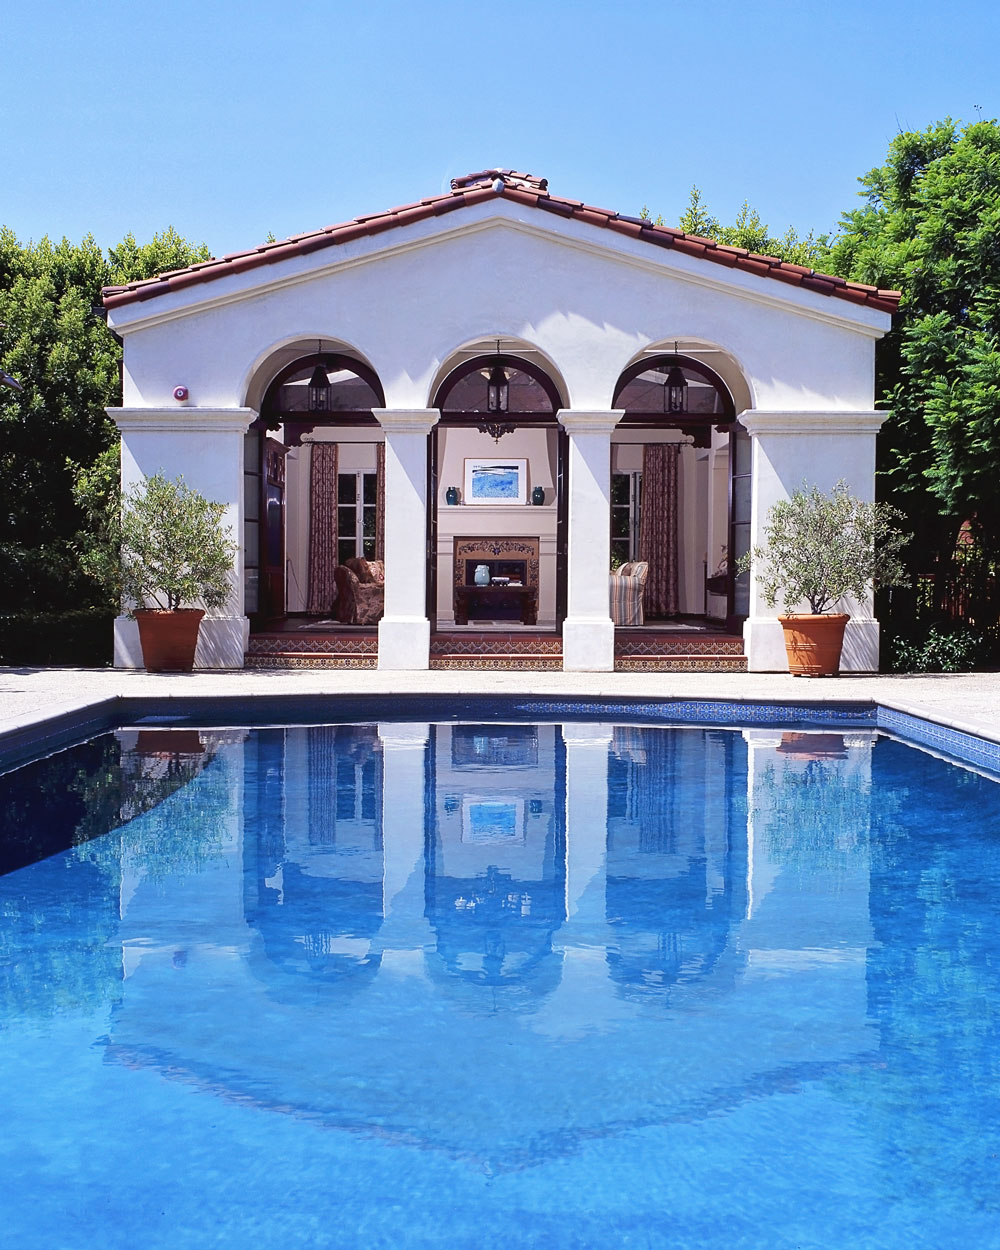 10-pool-poolhouse-exterior-spanish-dee-carawan.jpg